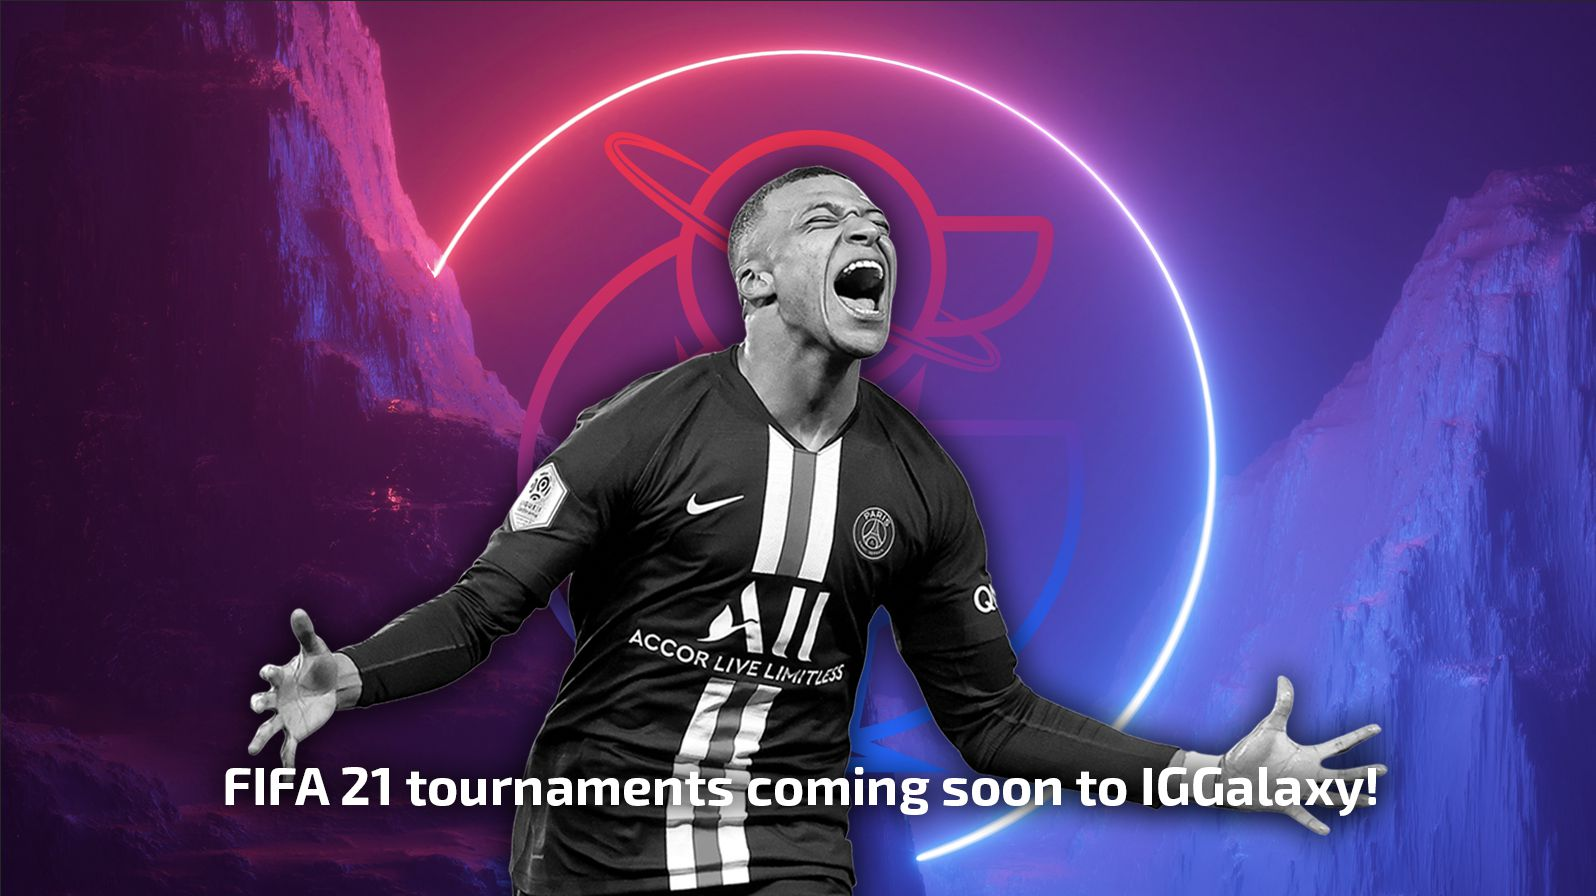 FIFA 21 tournaments to be available in IGGalaxy upon launch!